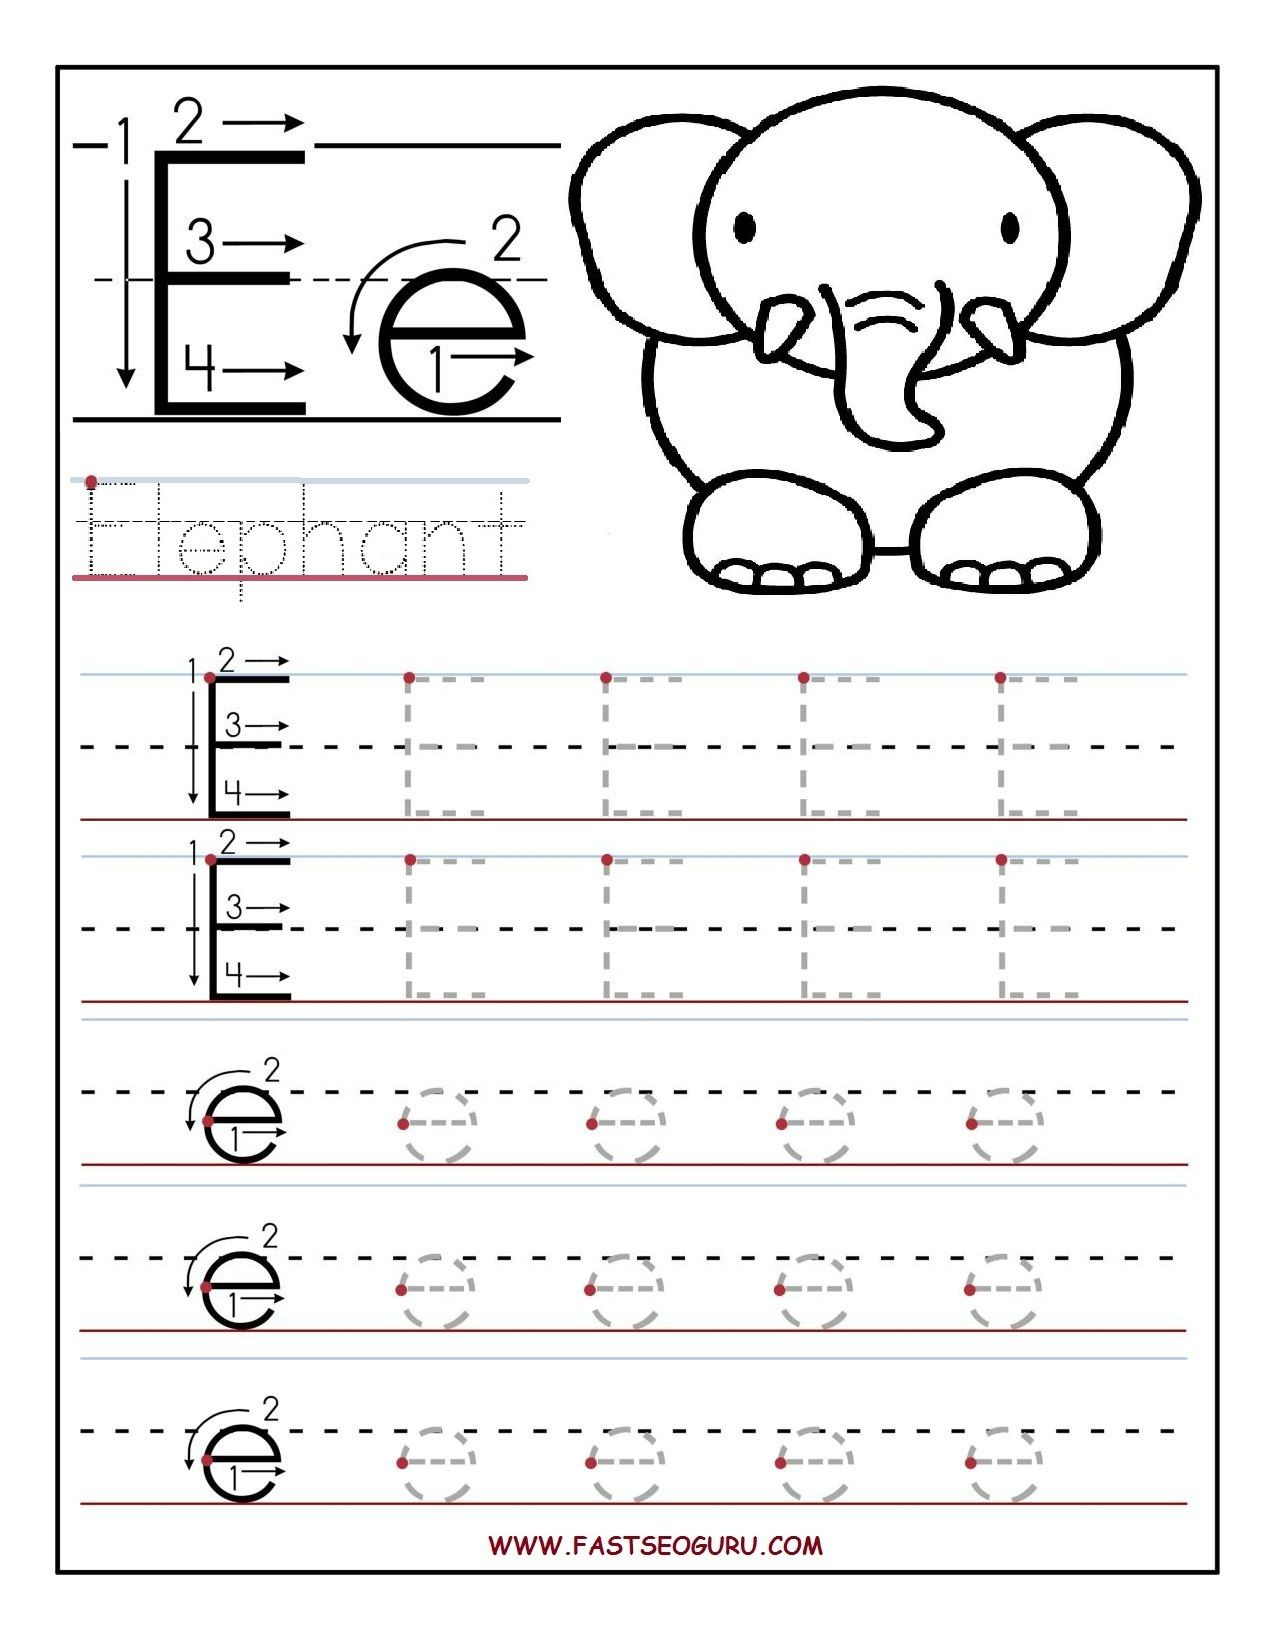 Printable Letter E Tracing Worksheets For Preschool intended for Letter E Tracing Worksheets Preschool